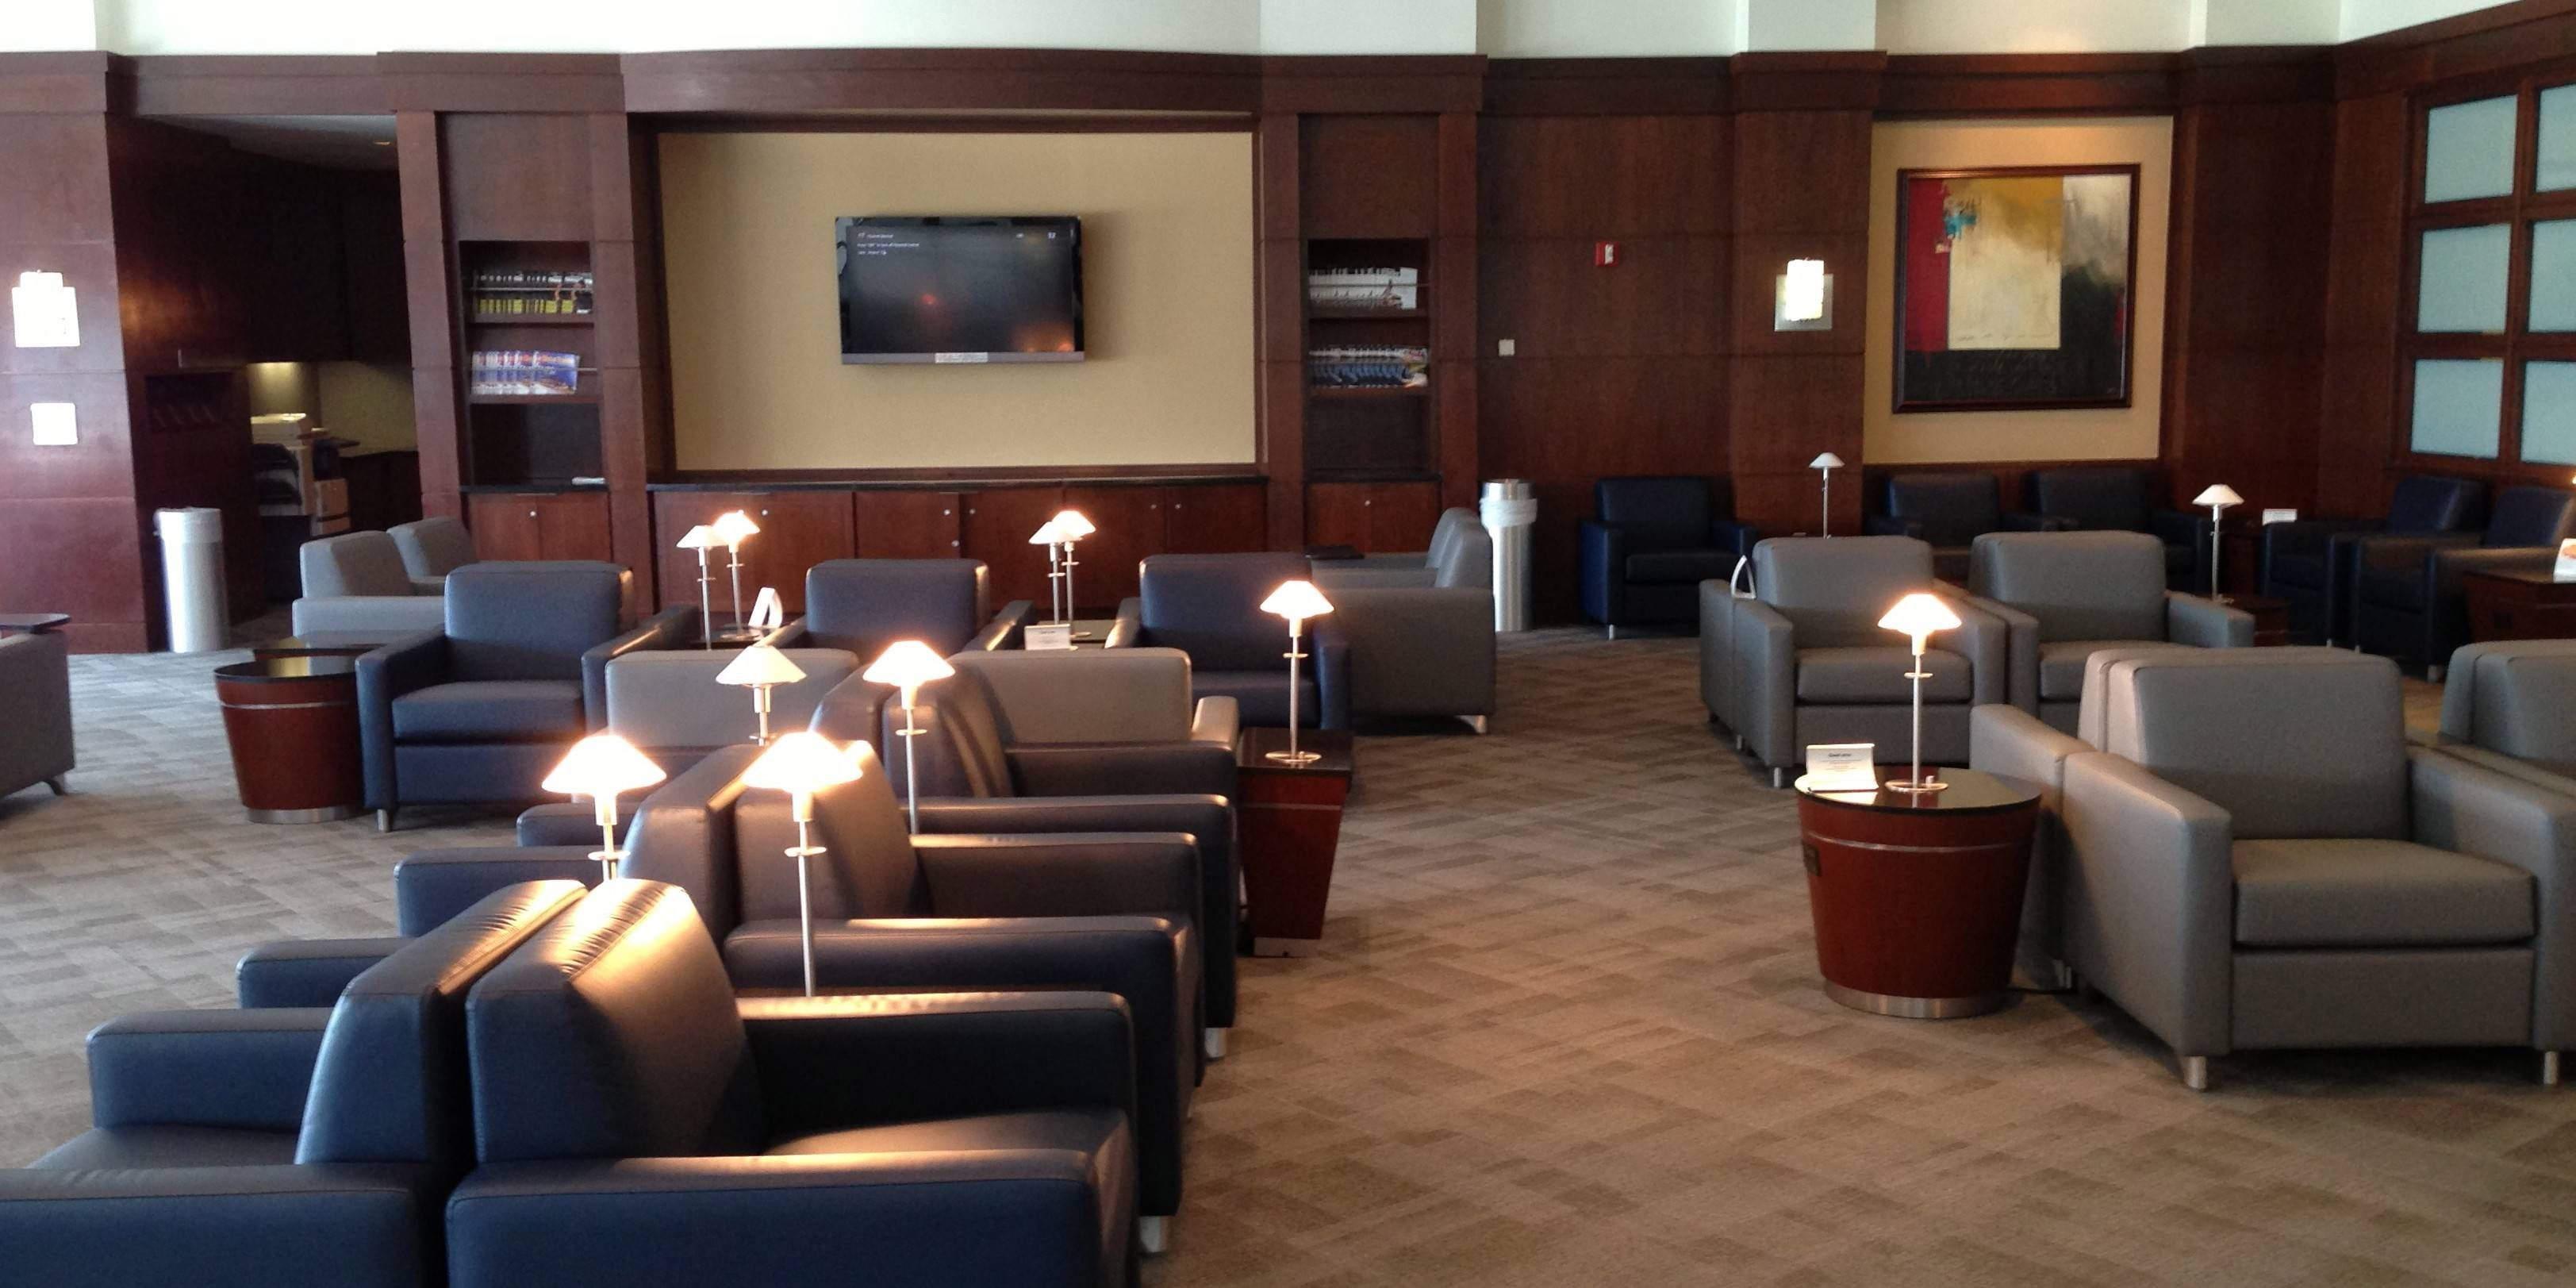 Sala VIP US Airways Club no Aeroporto de Charlotte